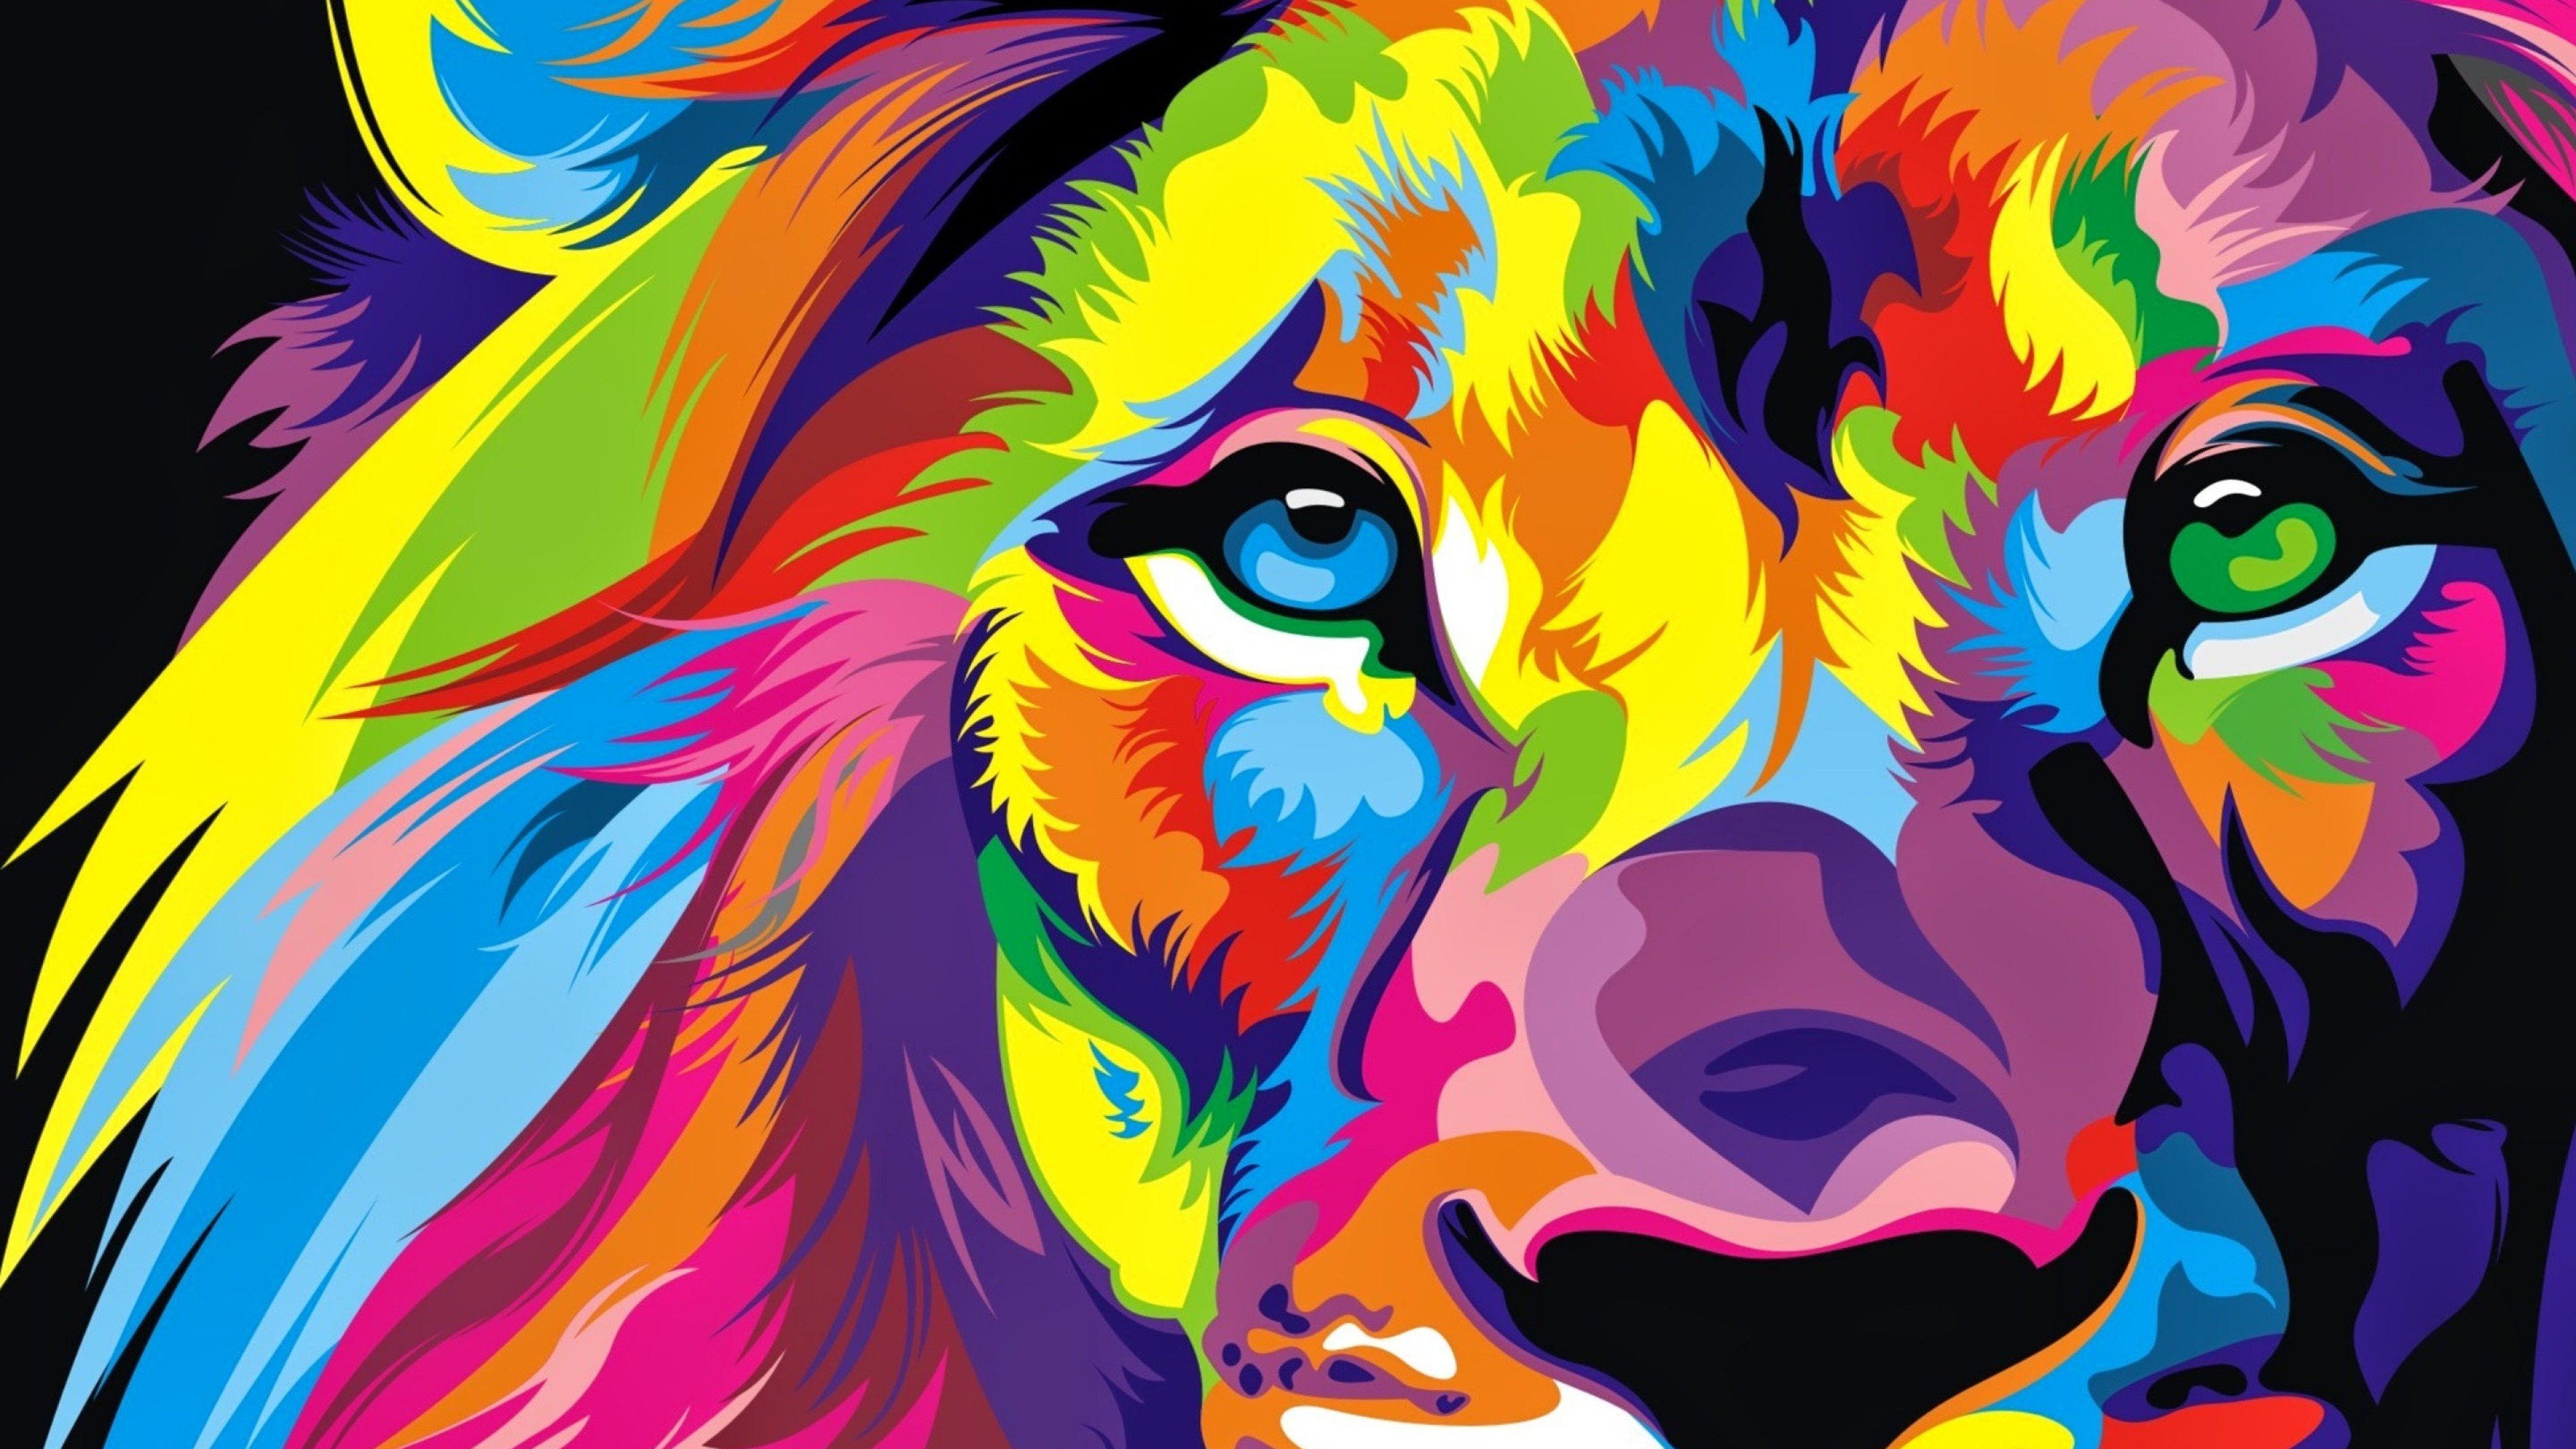 Free Download Download Full Hd Colourful Lion Artwork